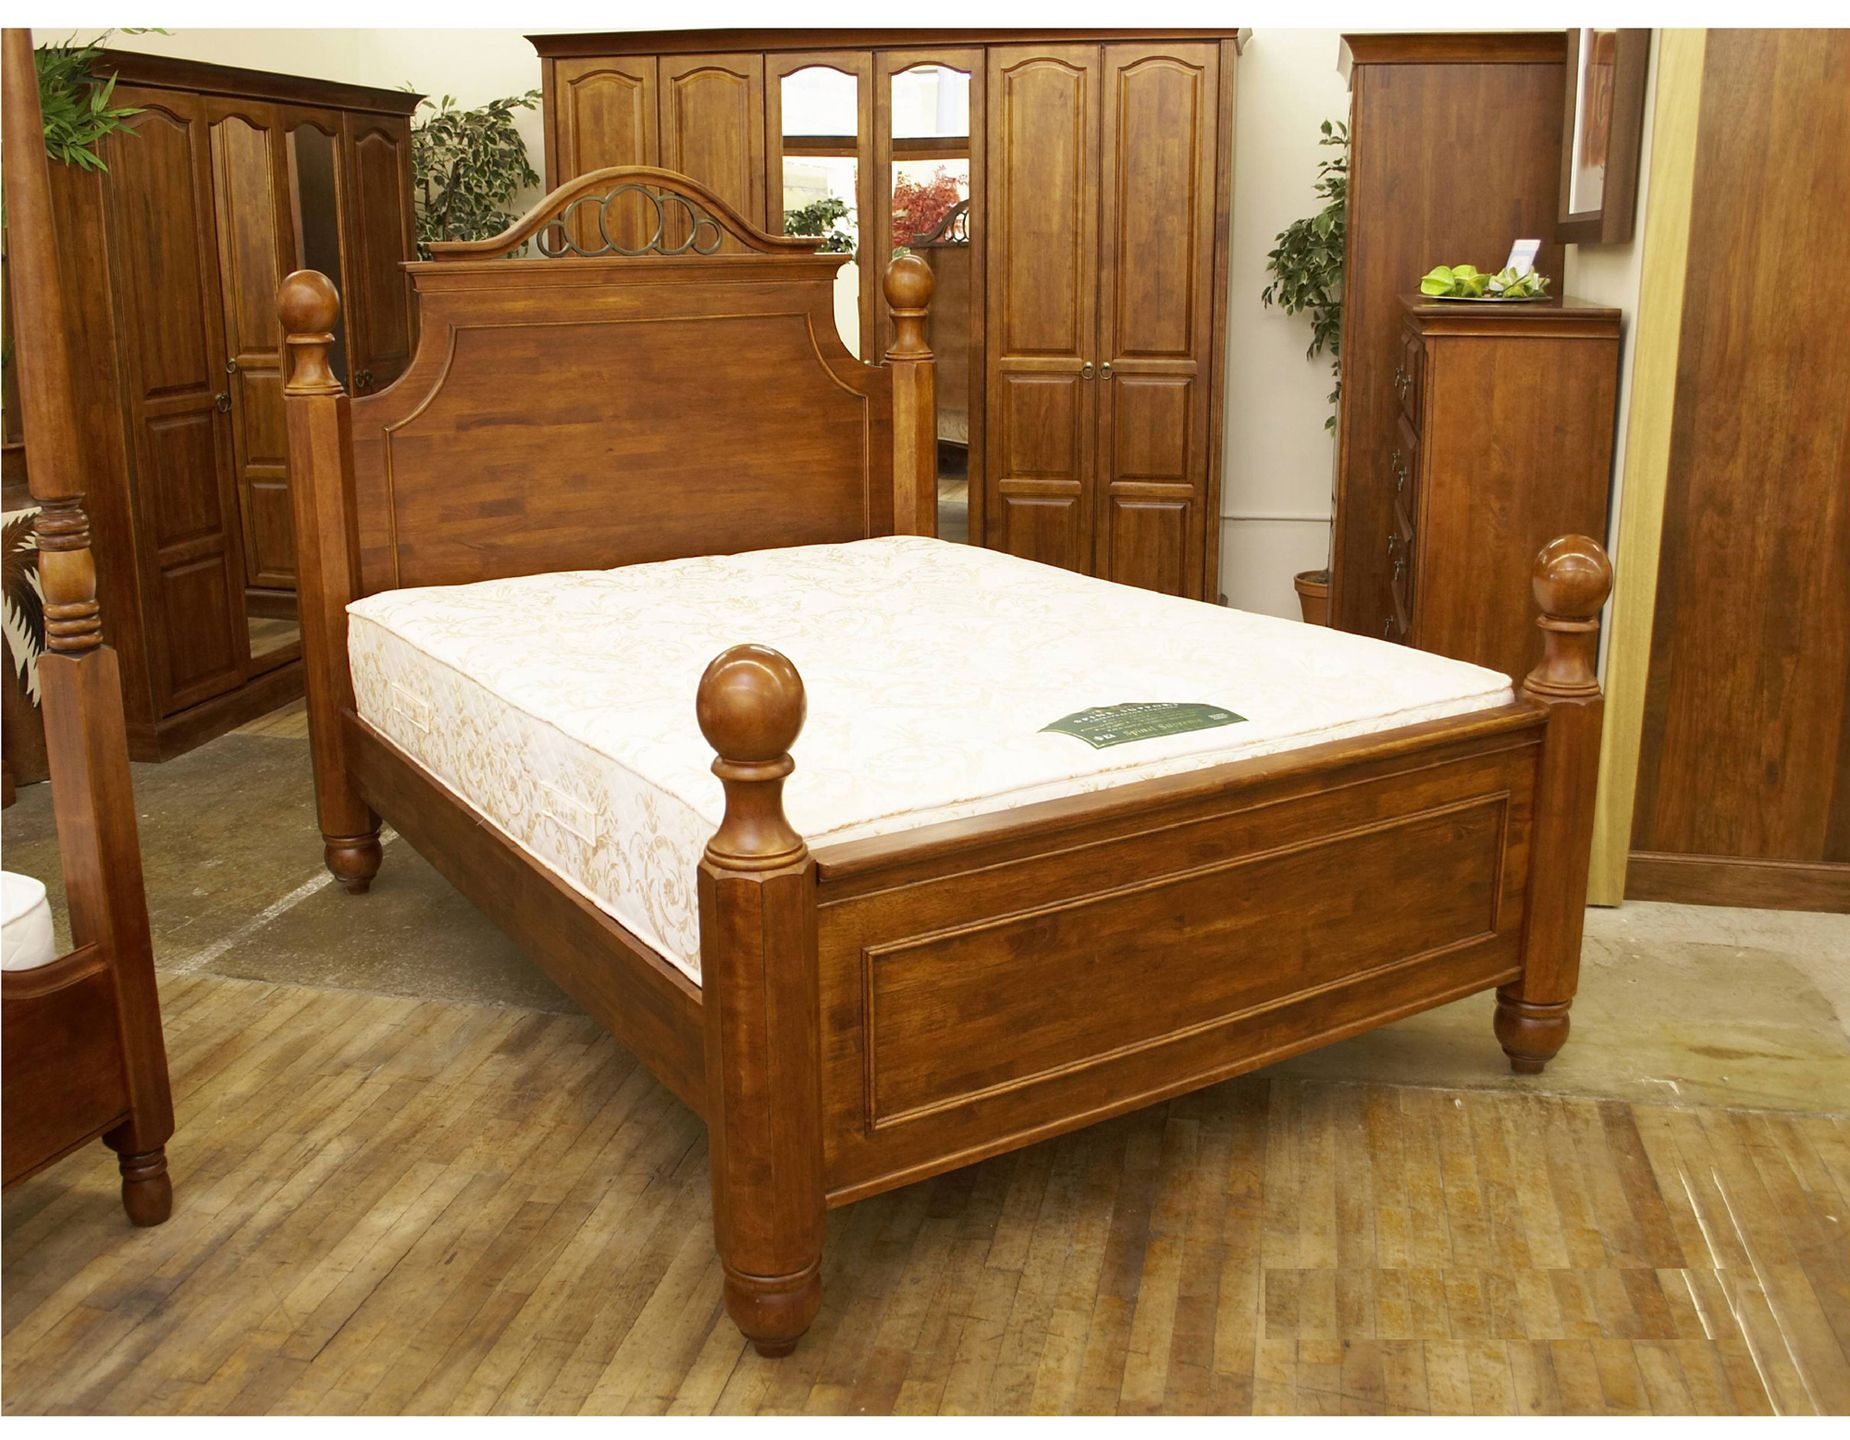 Bedroom Furniture Traditional oak bedroom furniture collection is hand-crafted from solid golden